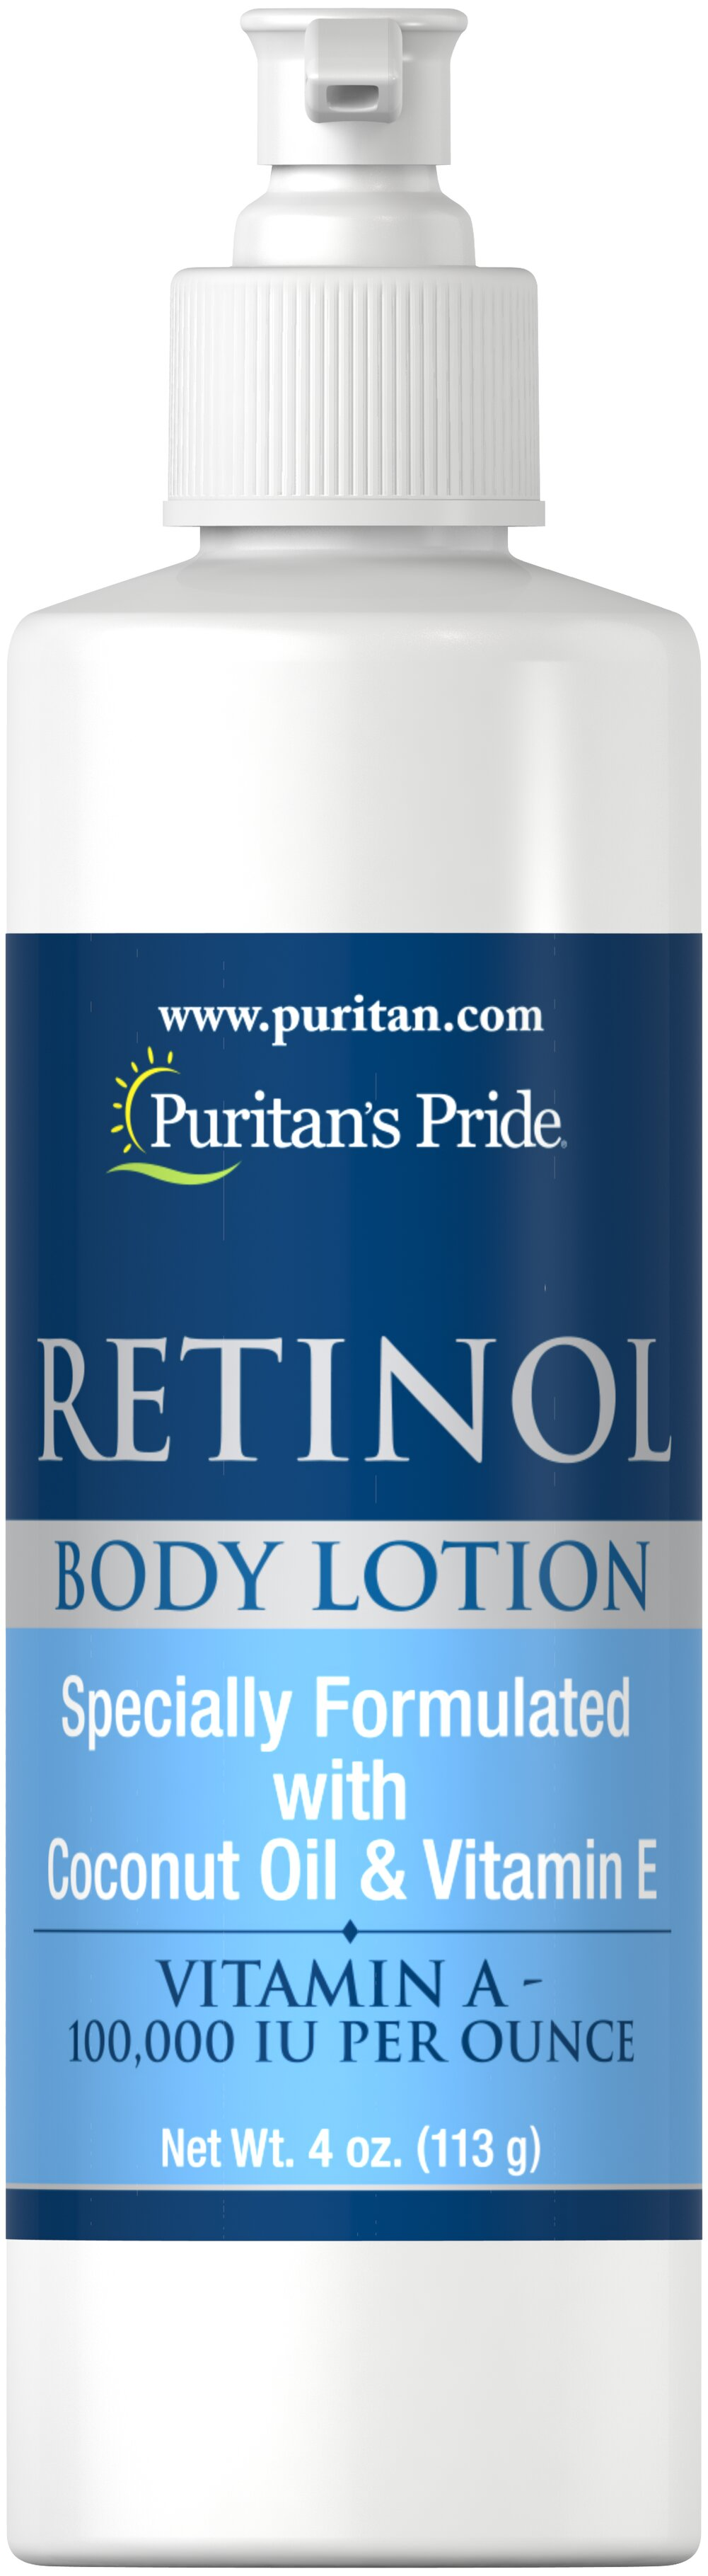 Retinol Body Lotion (Vitamin A 100,000 IU Per Ounce) <p>Vitamin A 100,000 IU per Ounce </p><p>Vitamin A is probably the most important skin vitamin for the appearance of the skin. Vitamin A is also one of the few vitamins that can be absorbed through the skin to provide direct benefits. Let your skin take advantage of the benefits of Vitamin A Lotion.</p> 4 oz Lotion 100000 IU